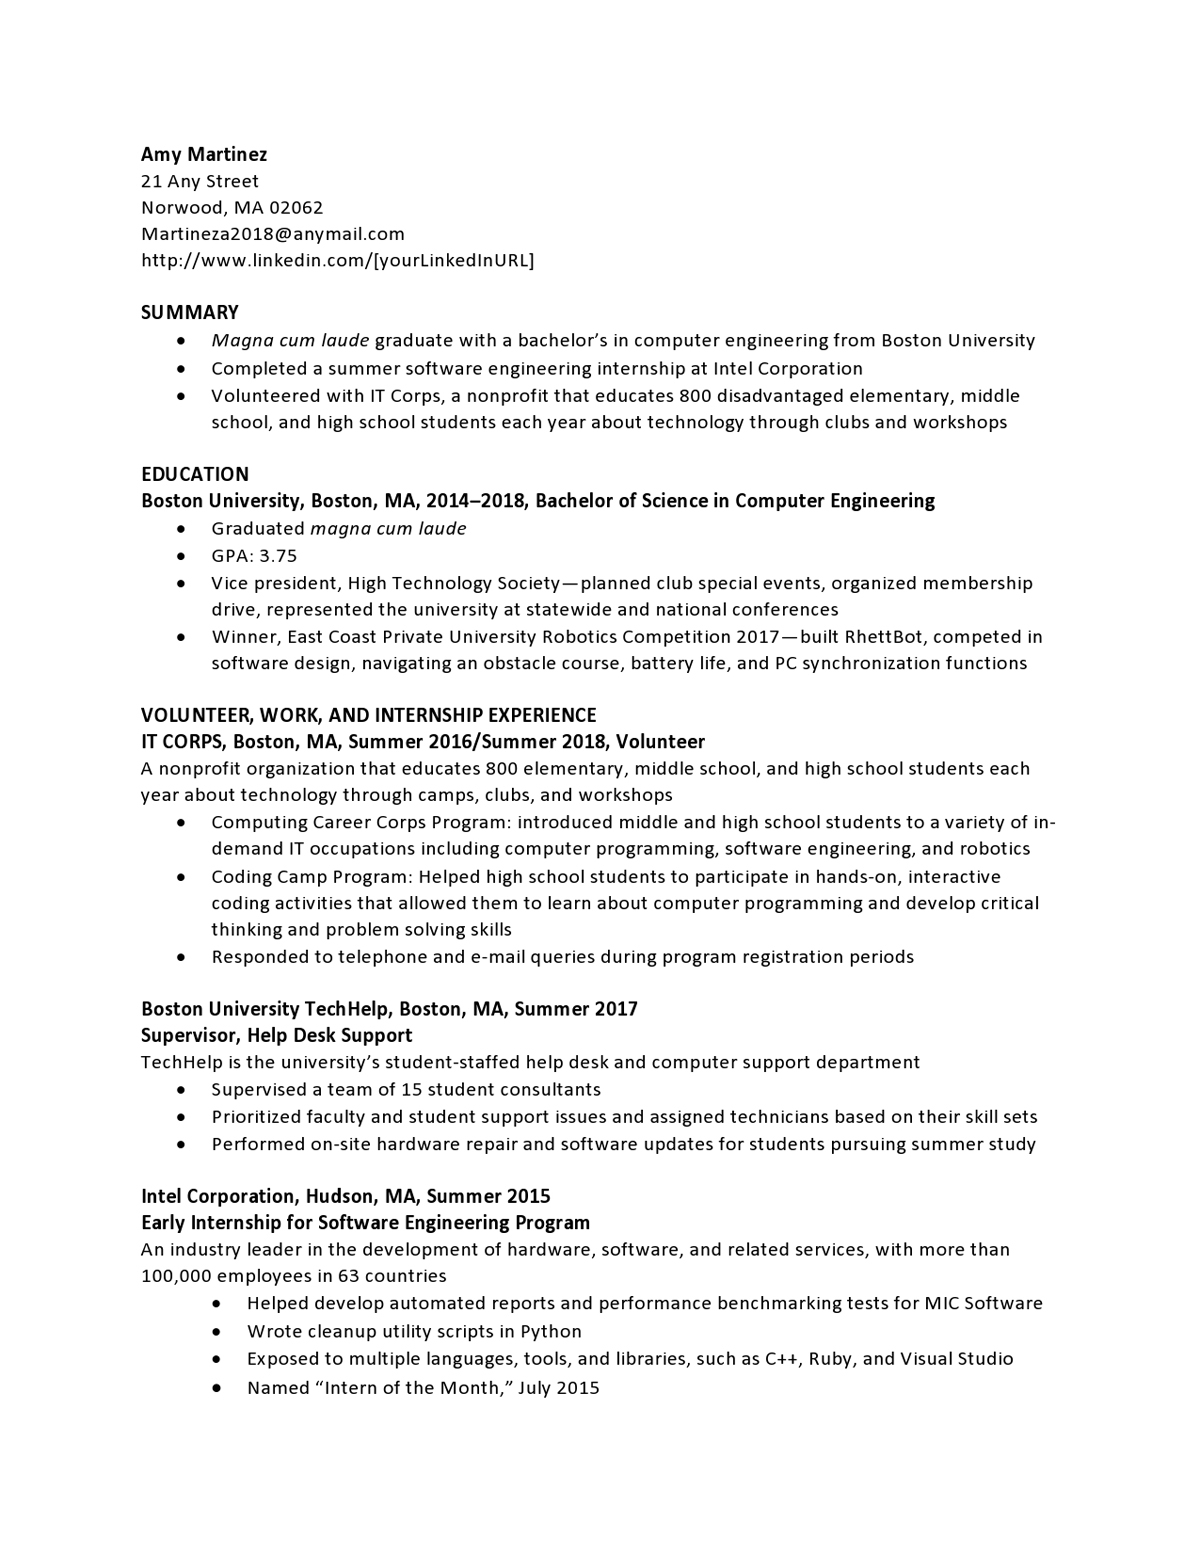 resume samples templates examples vault information technology crescoinftech43 quality Resume Information Technology Resume Examples